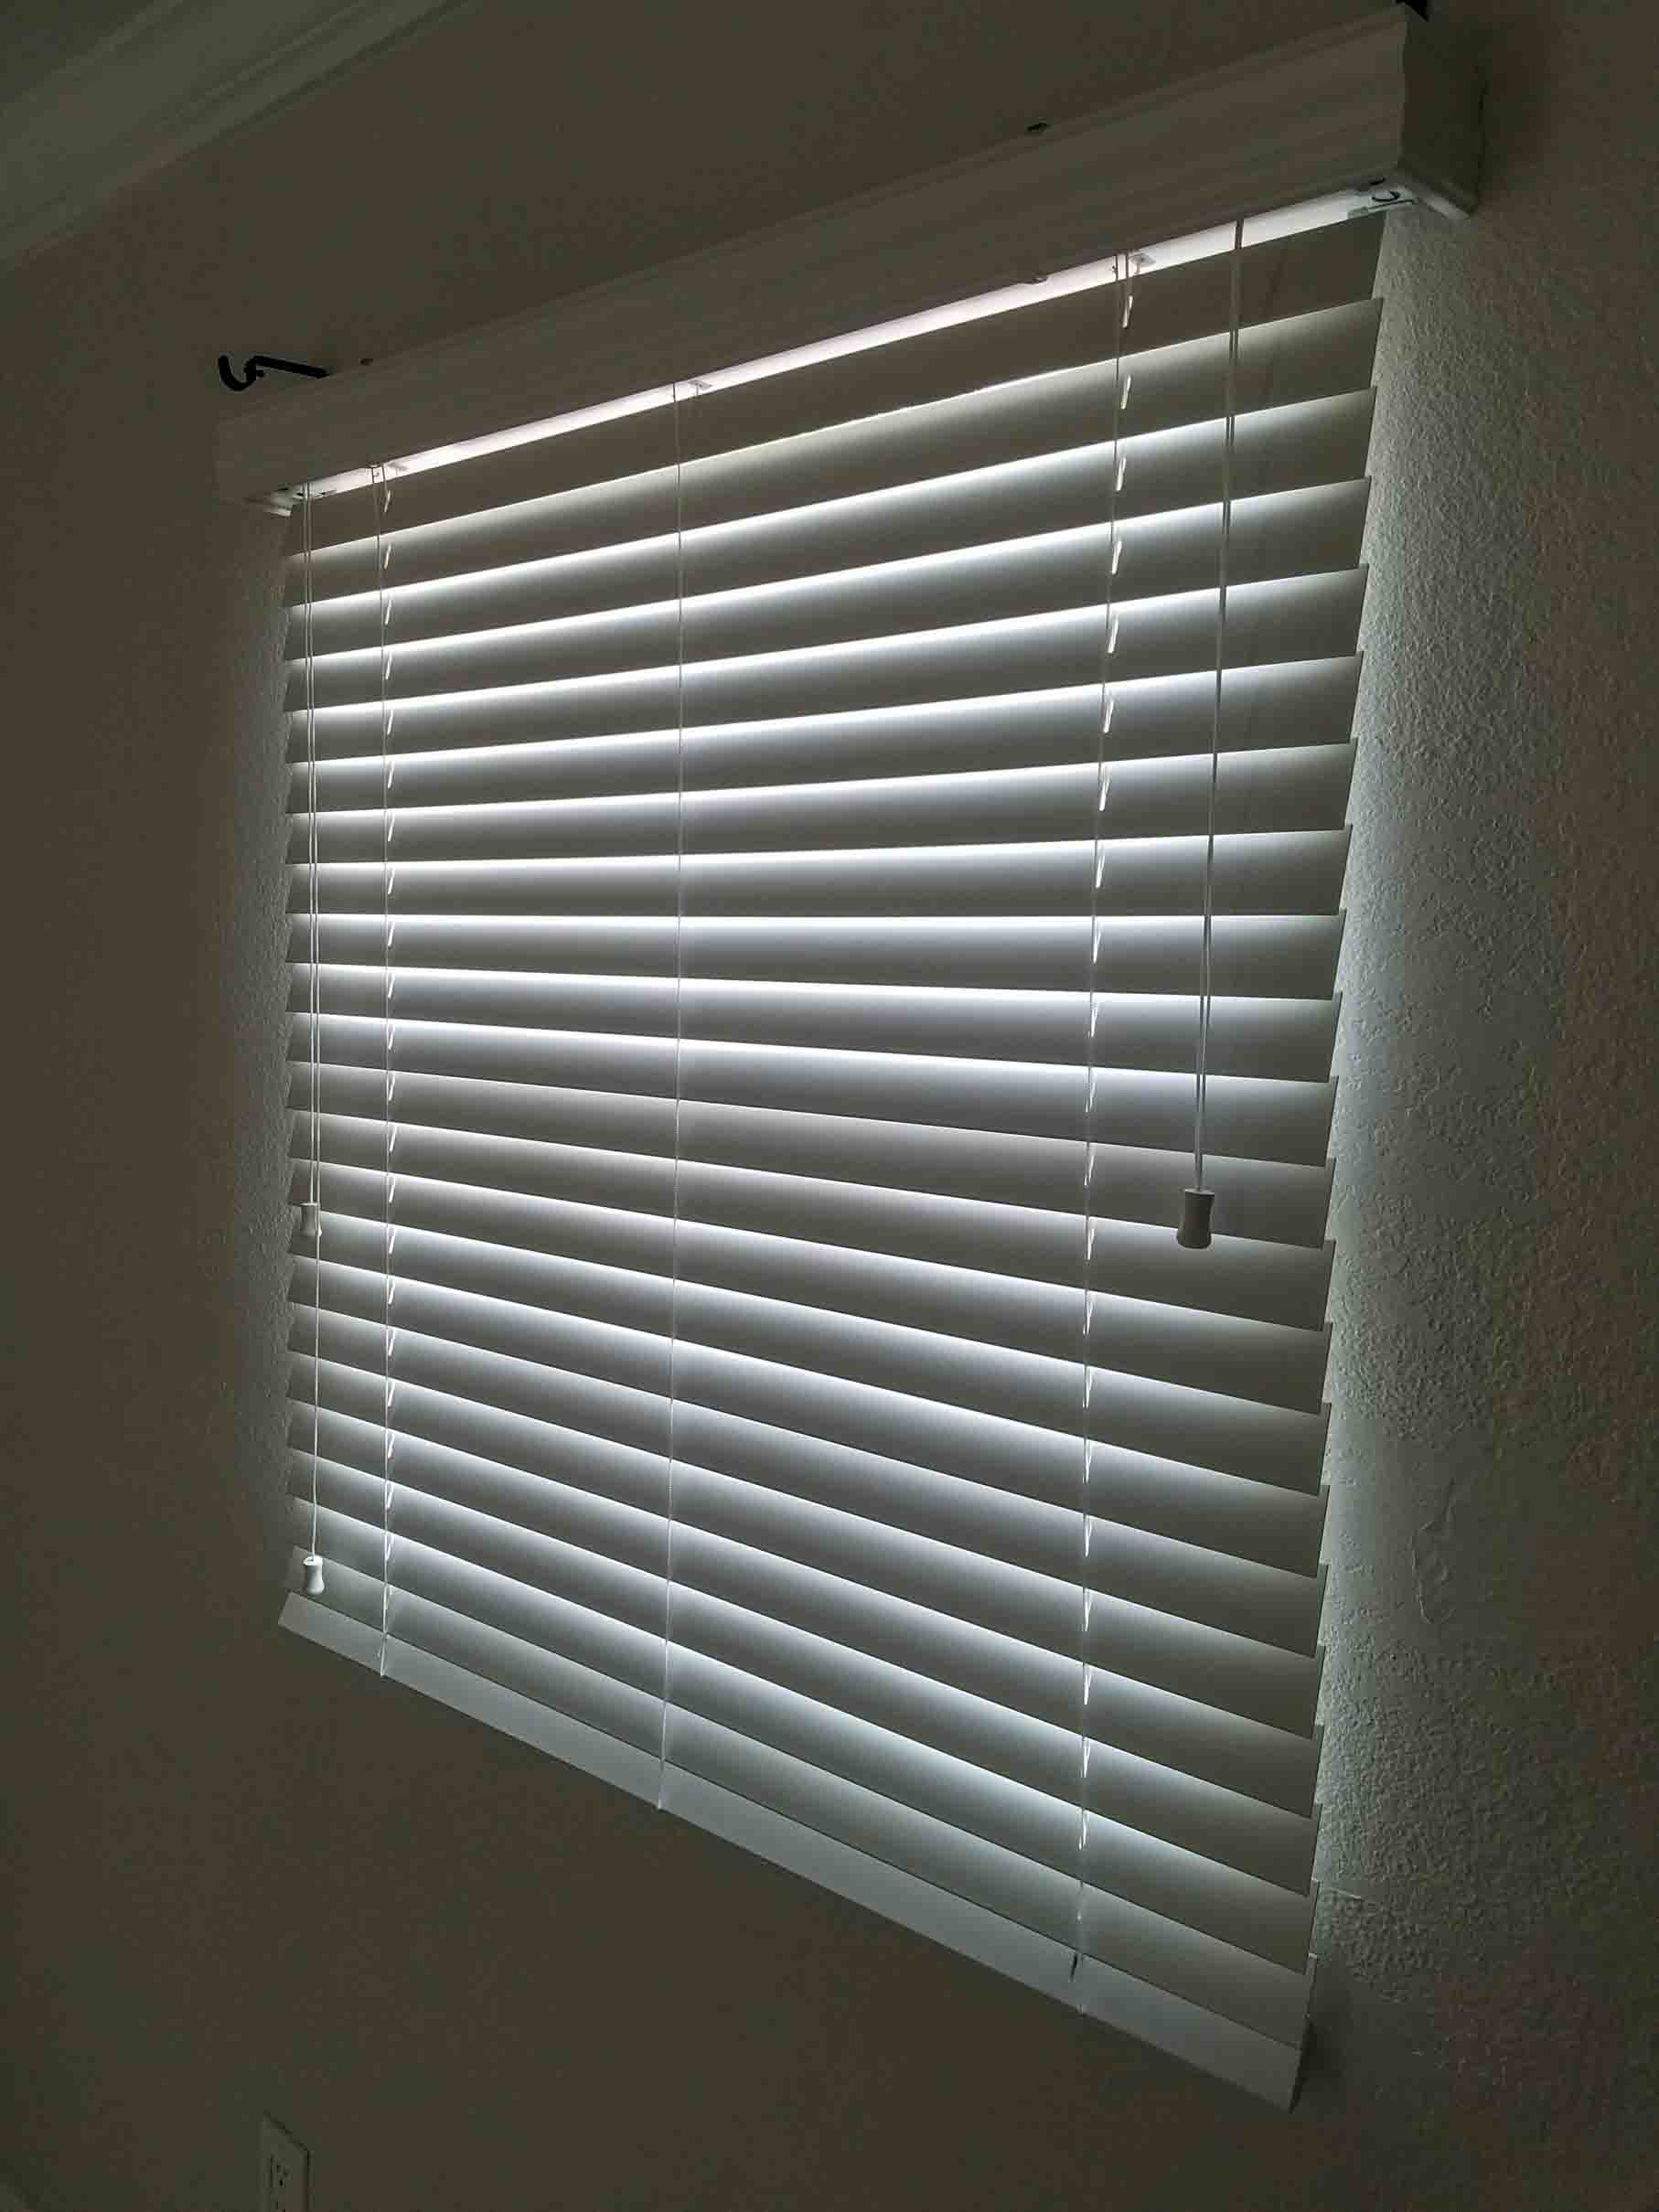 wood blinds gallery WOOD BLINDS GALLERY 20180120 120620